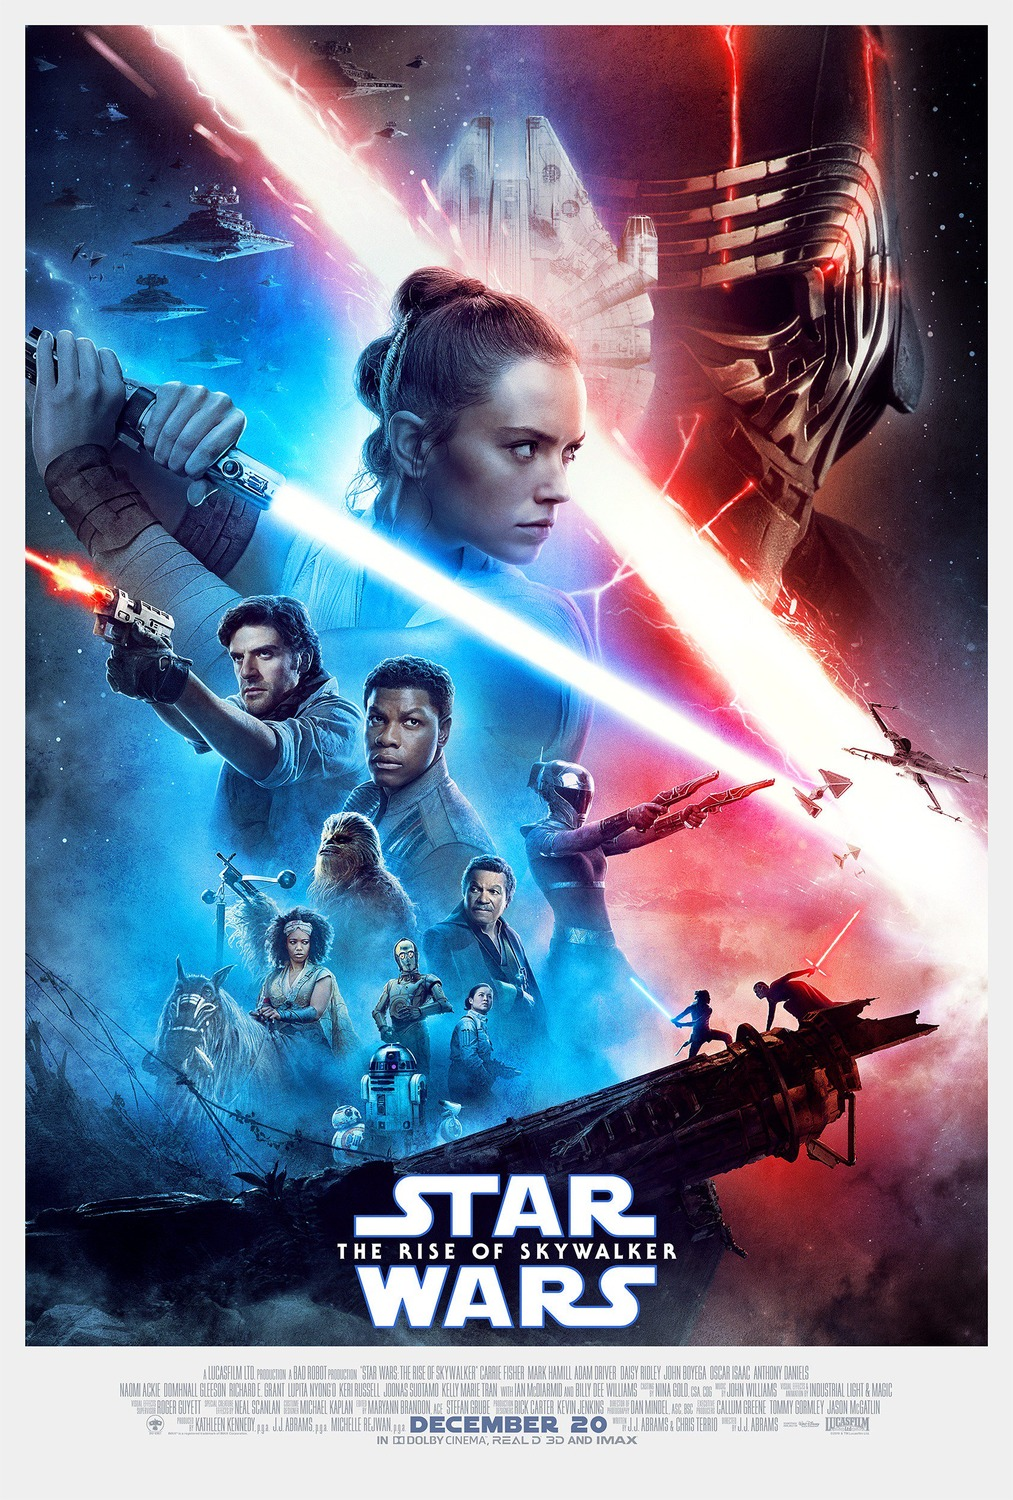 Extra Large Movie Poster Image for Star Wars: The Rise of Skywalker (#4 of 5)